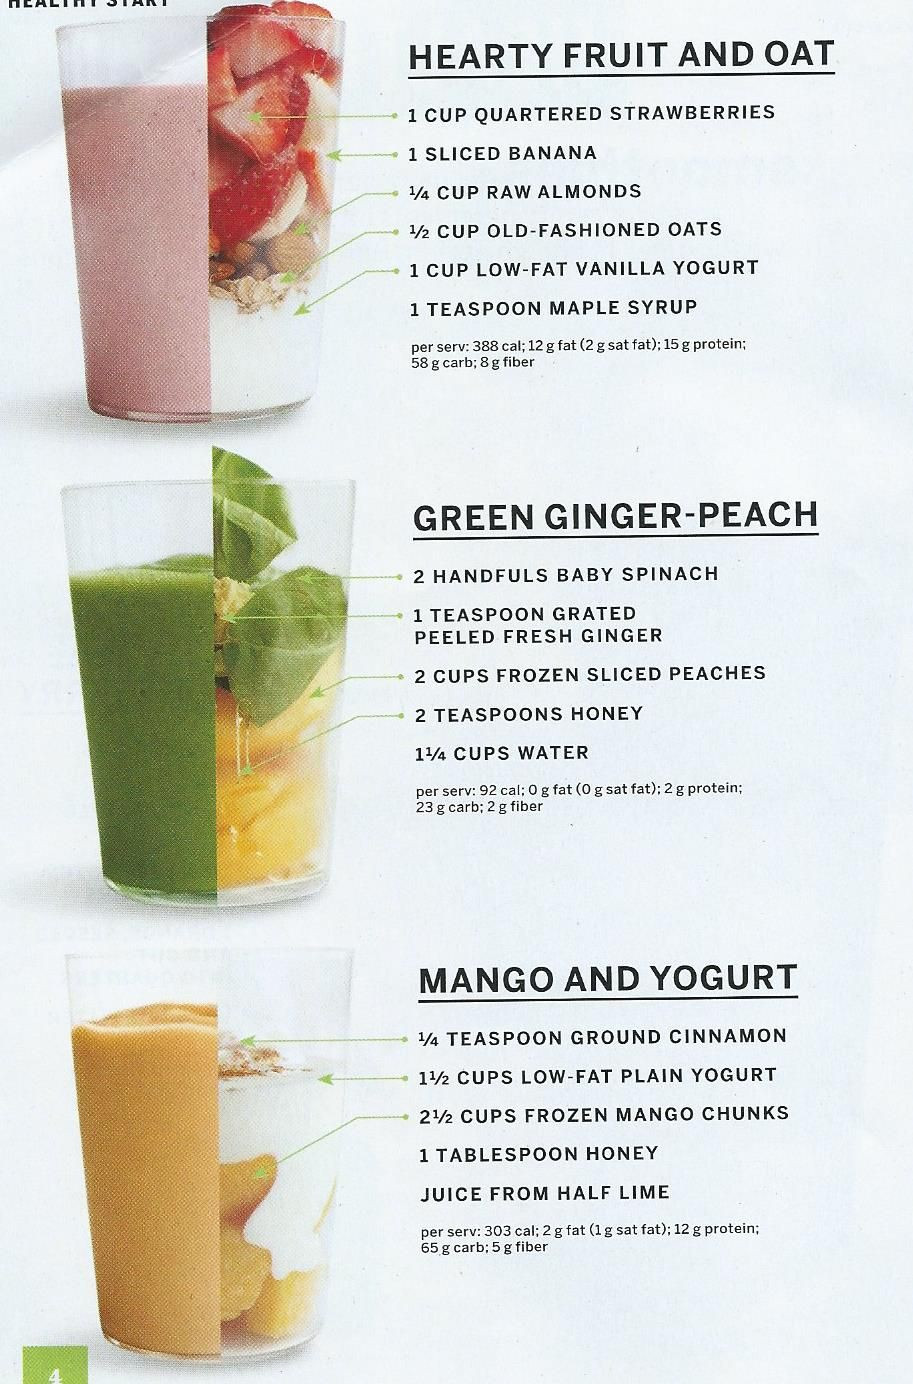 Healthy Fruit And Vegetable Smoothie Recipes For Weight Loss  FREE 12 Day Green Smoothie E Course